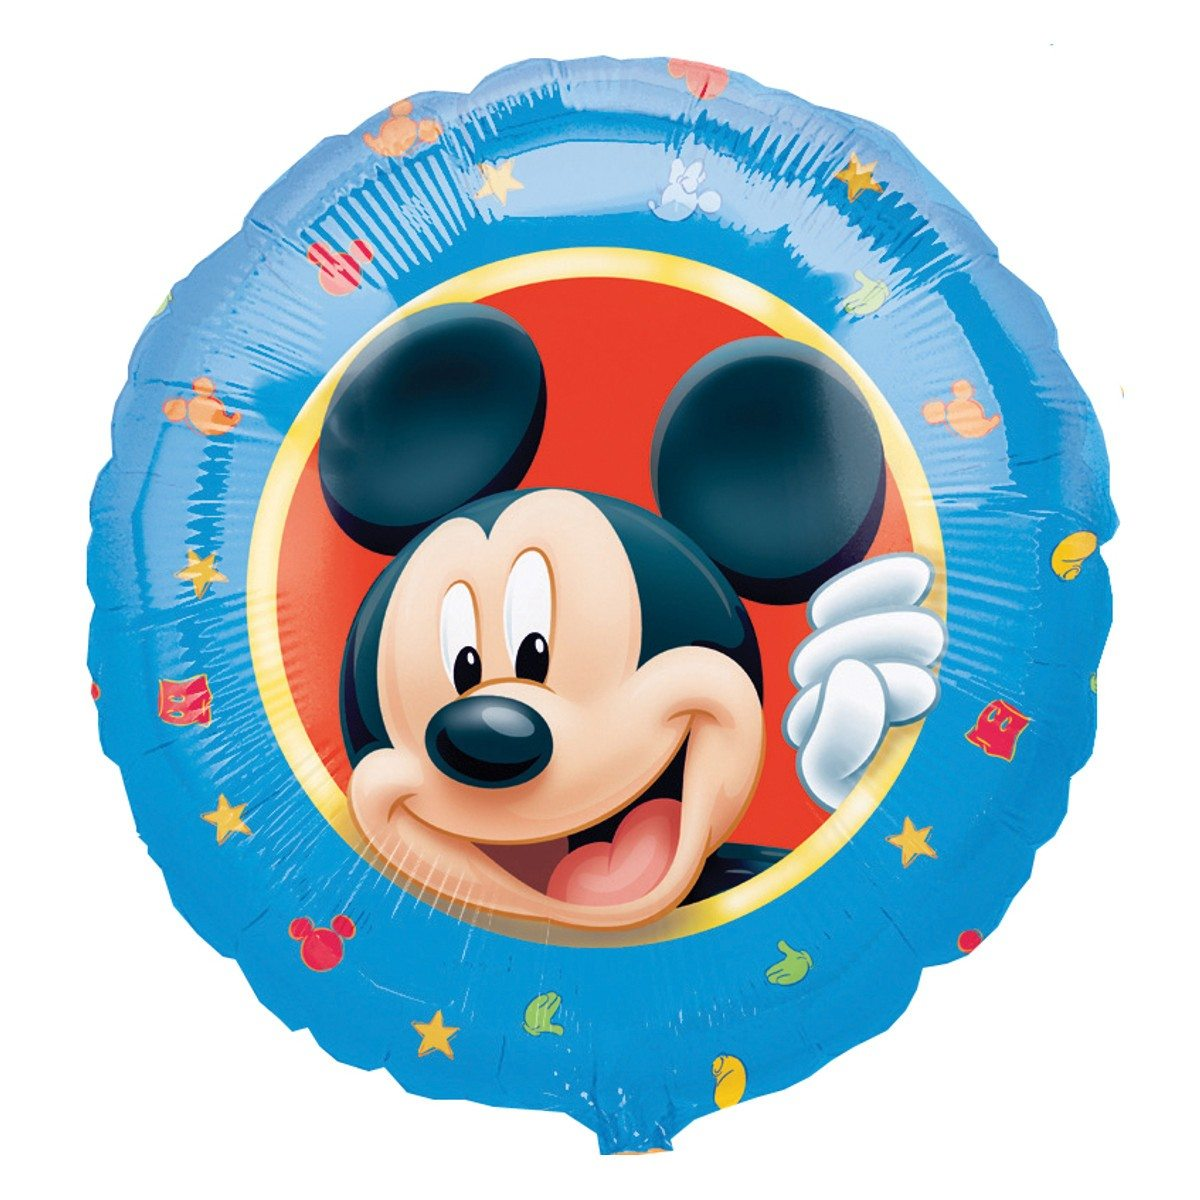 Ballon à hélium - Mickey Mouse